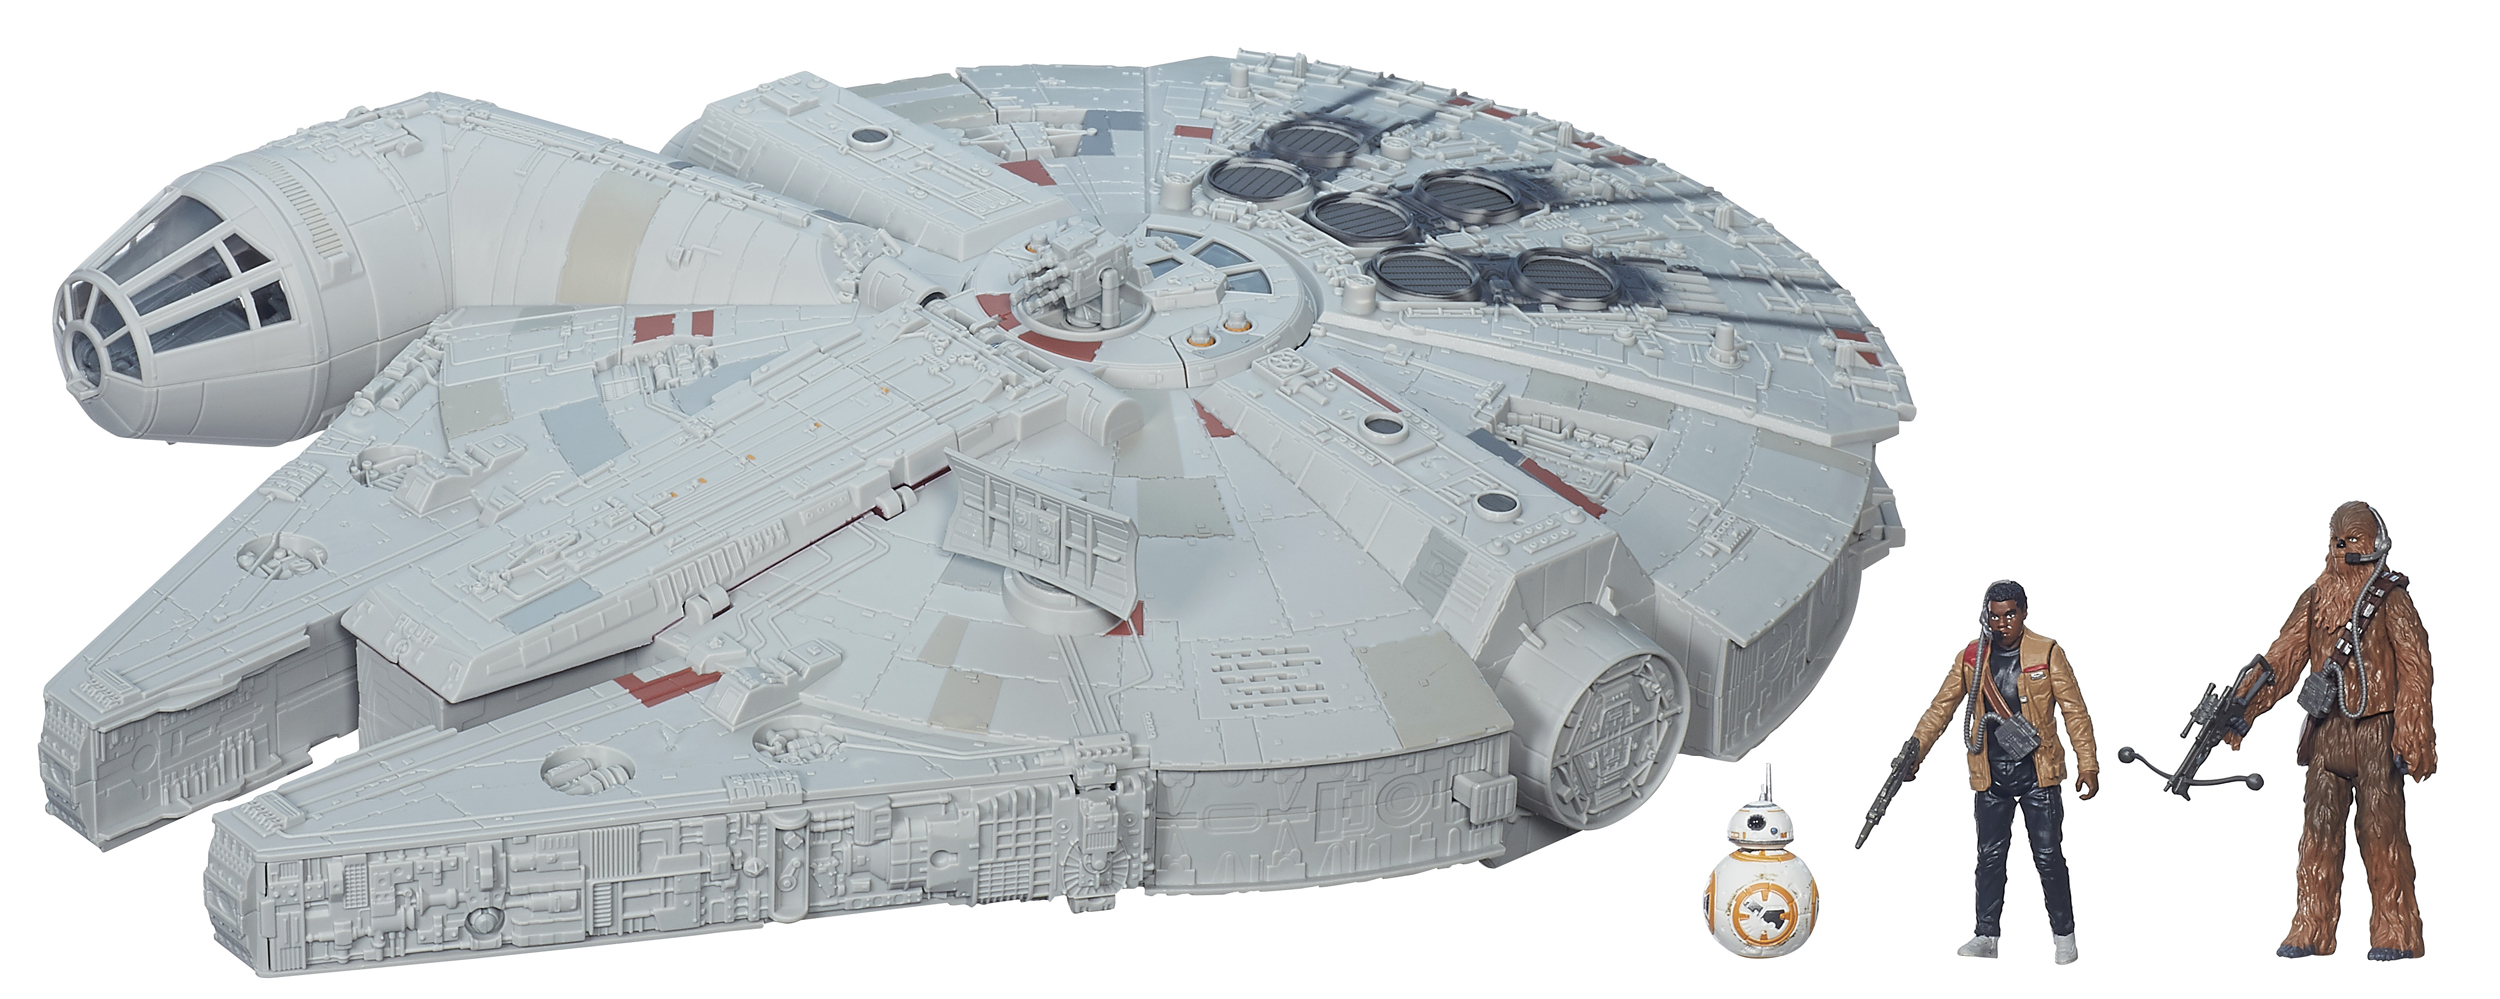 Imange of the Millennium Falcon